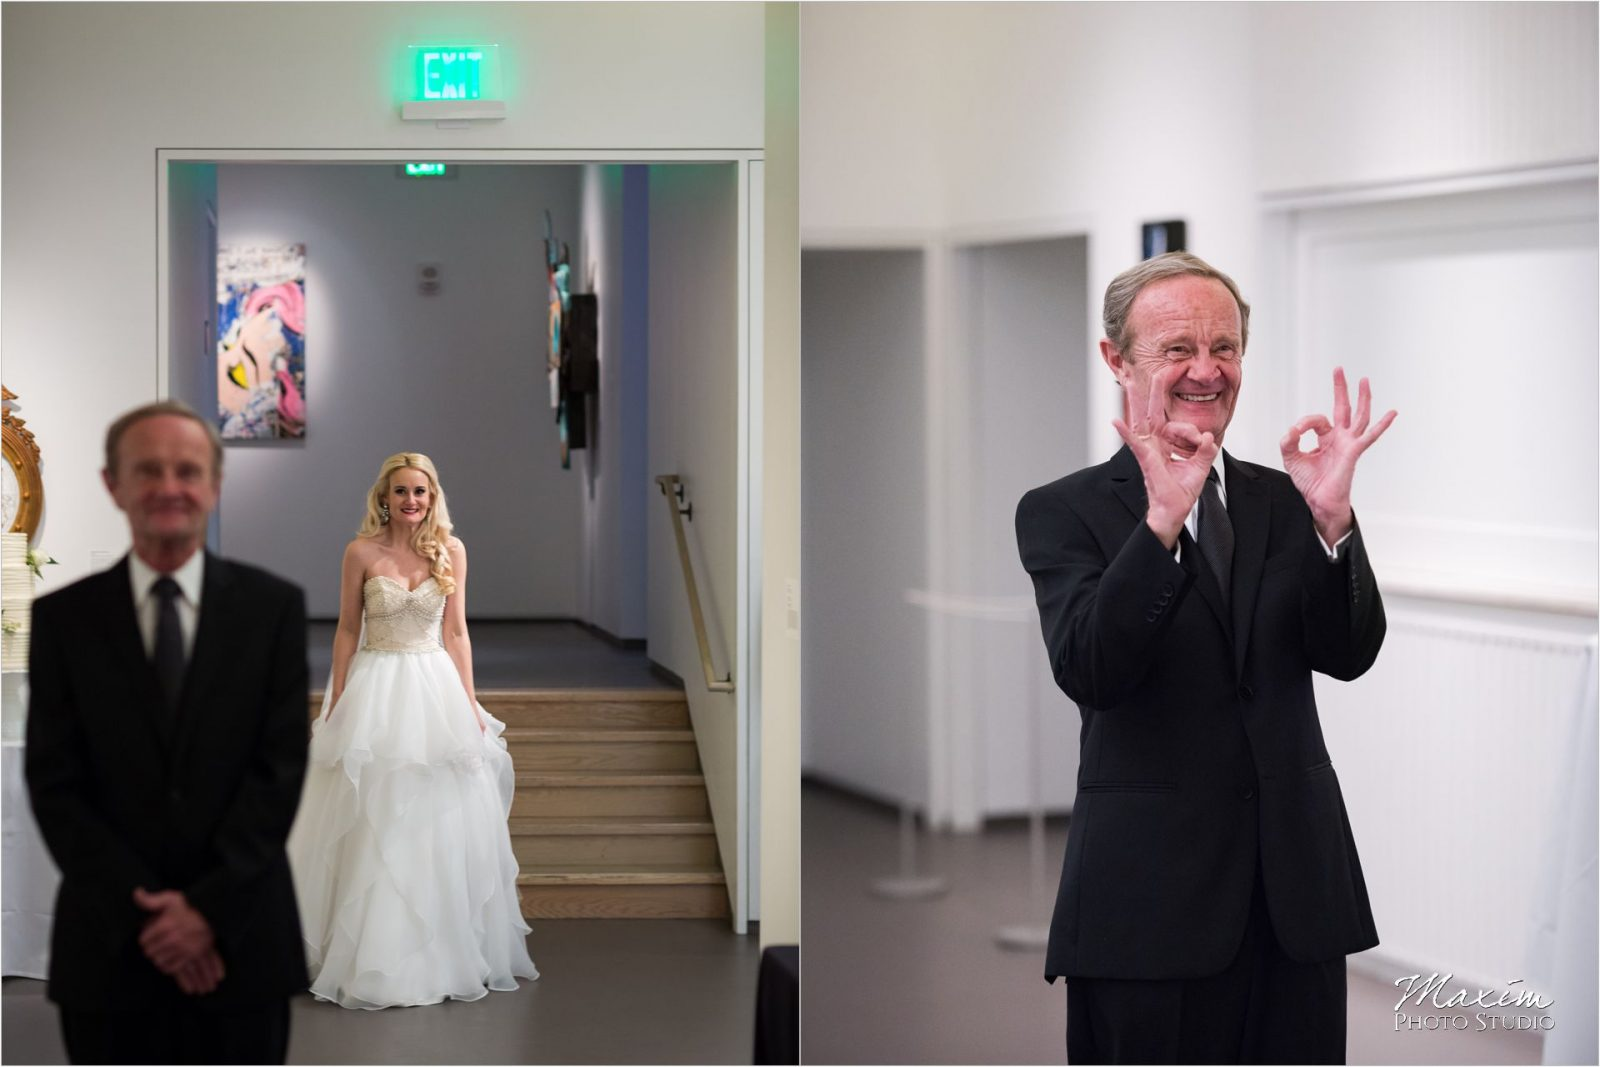 Cincinnati Wedding Photographers 21C Museum Hotel bride father first look